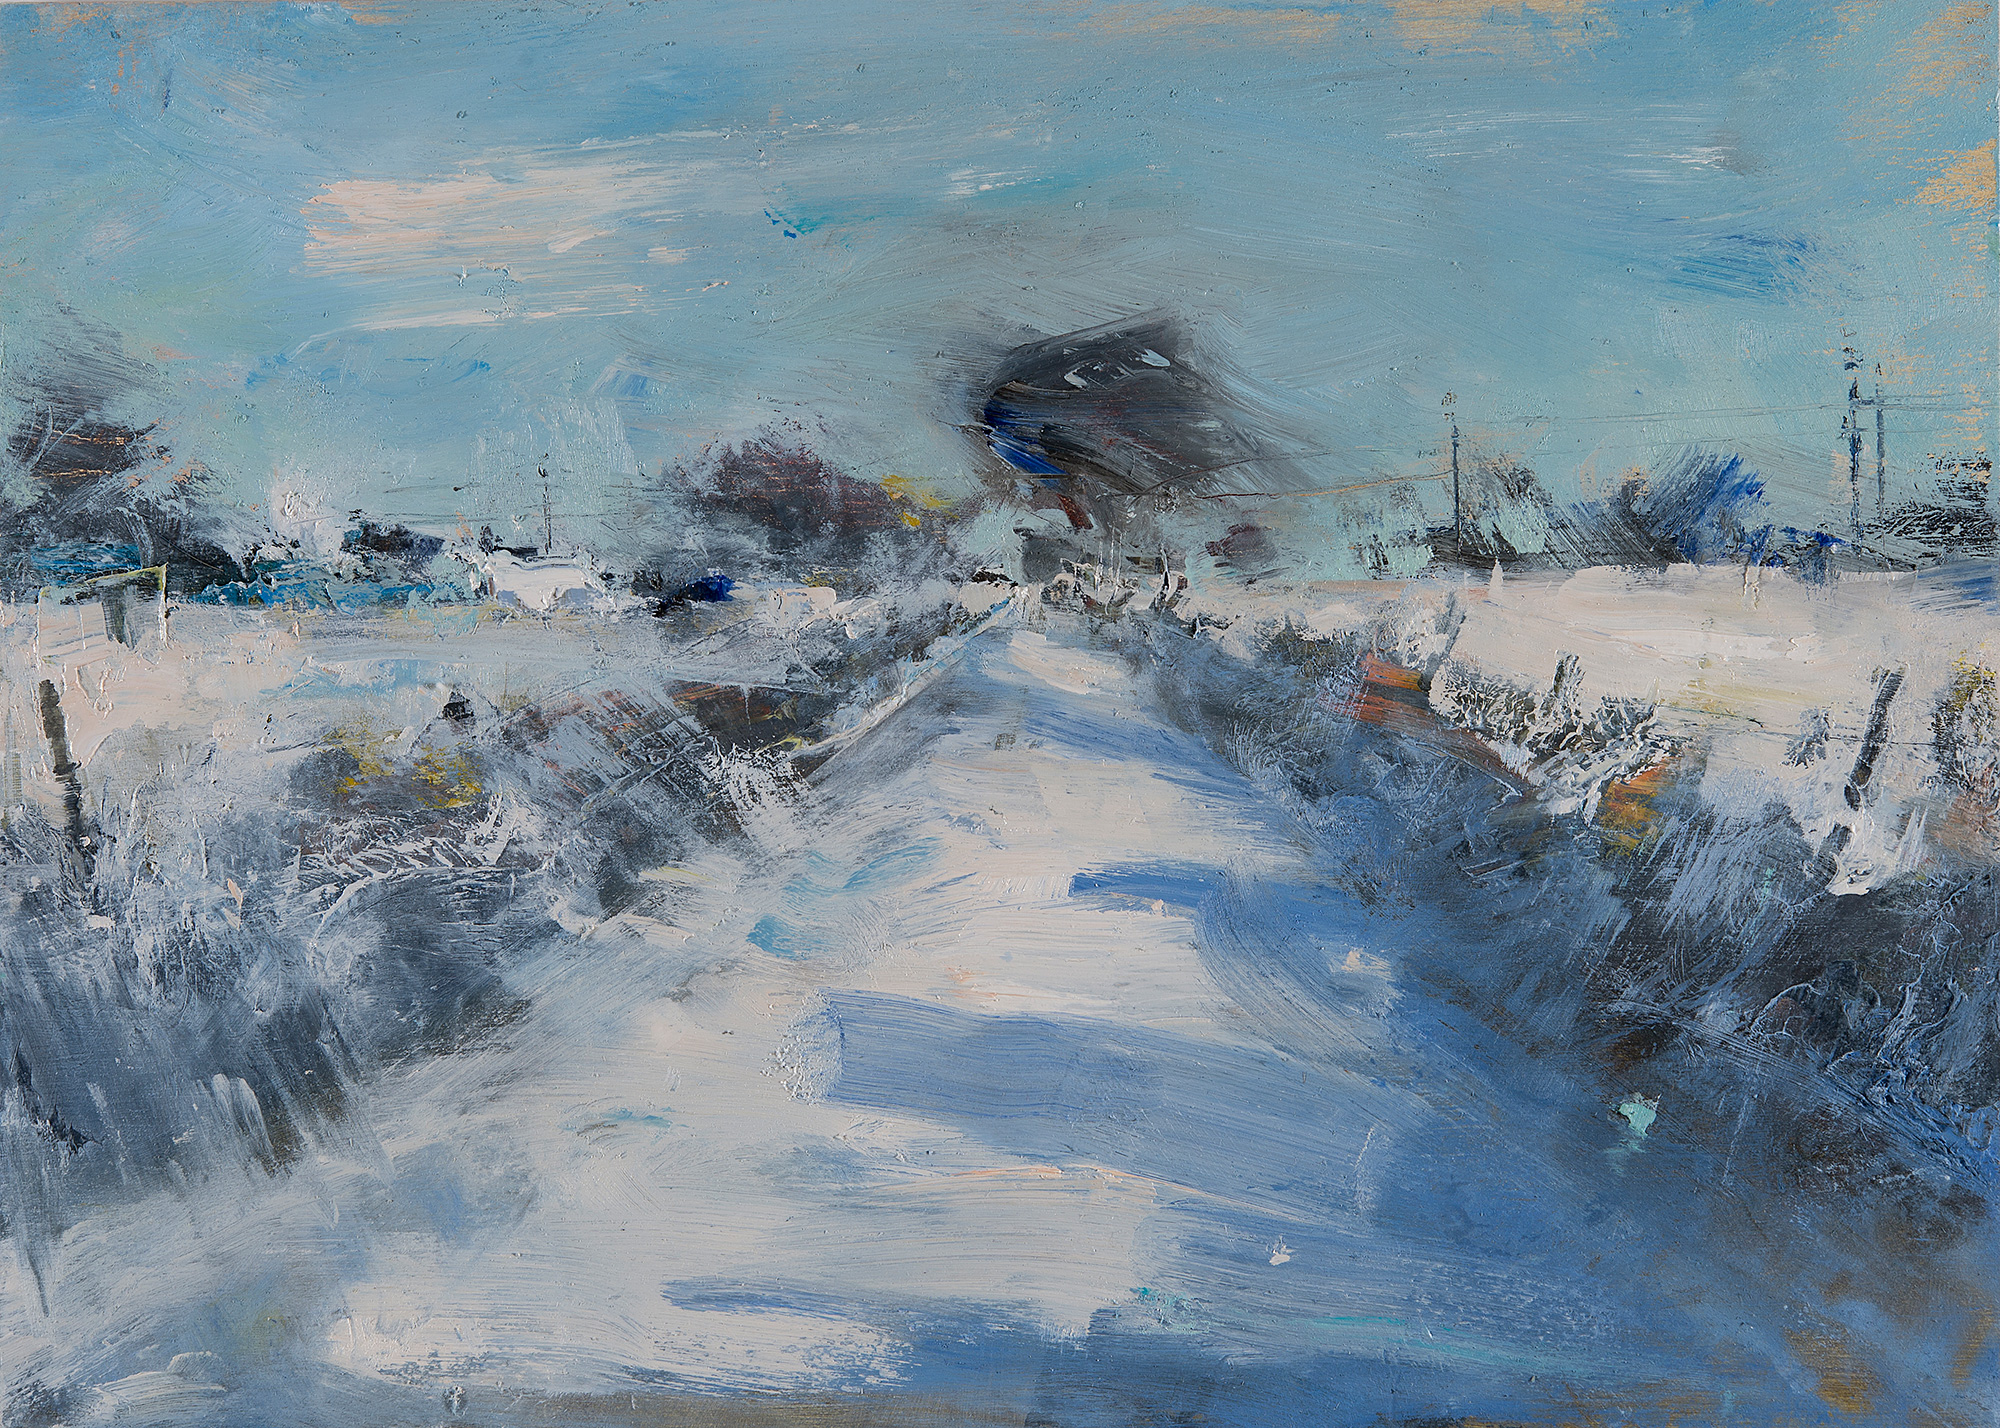 Snow Undisturbed, Cornish Lane.  Oil on board. 25 x 35cm  Sold